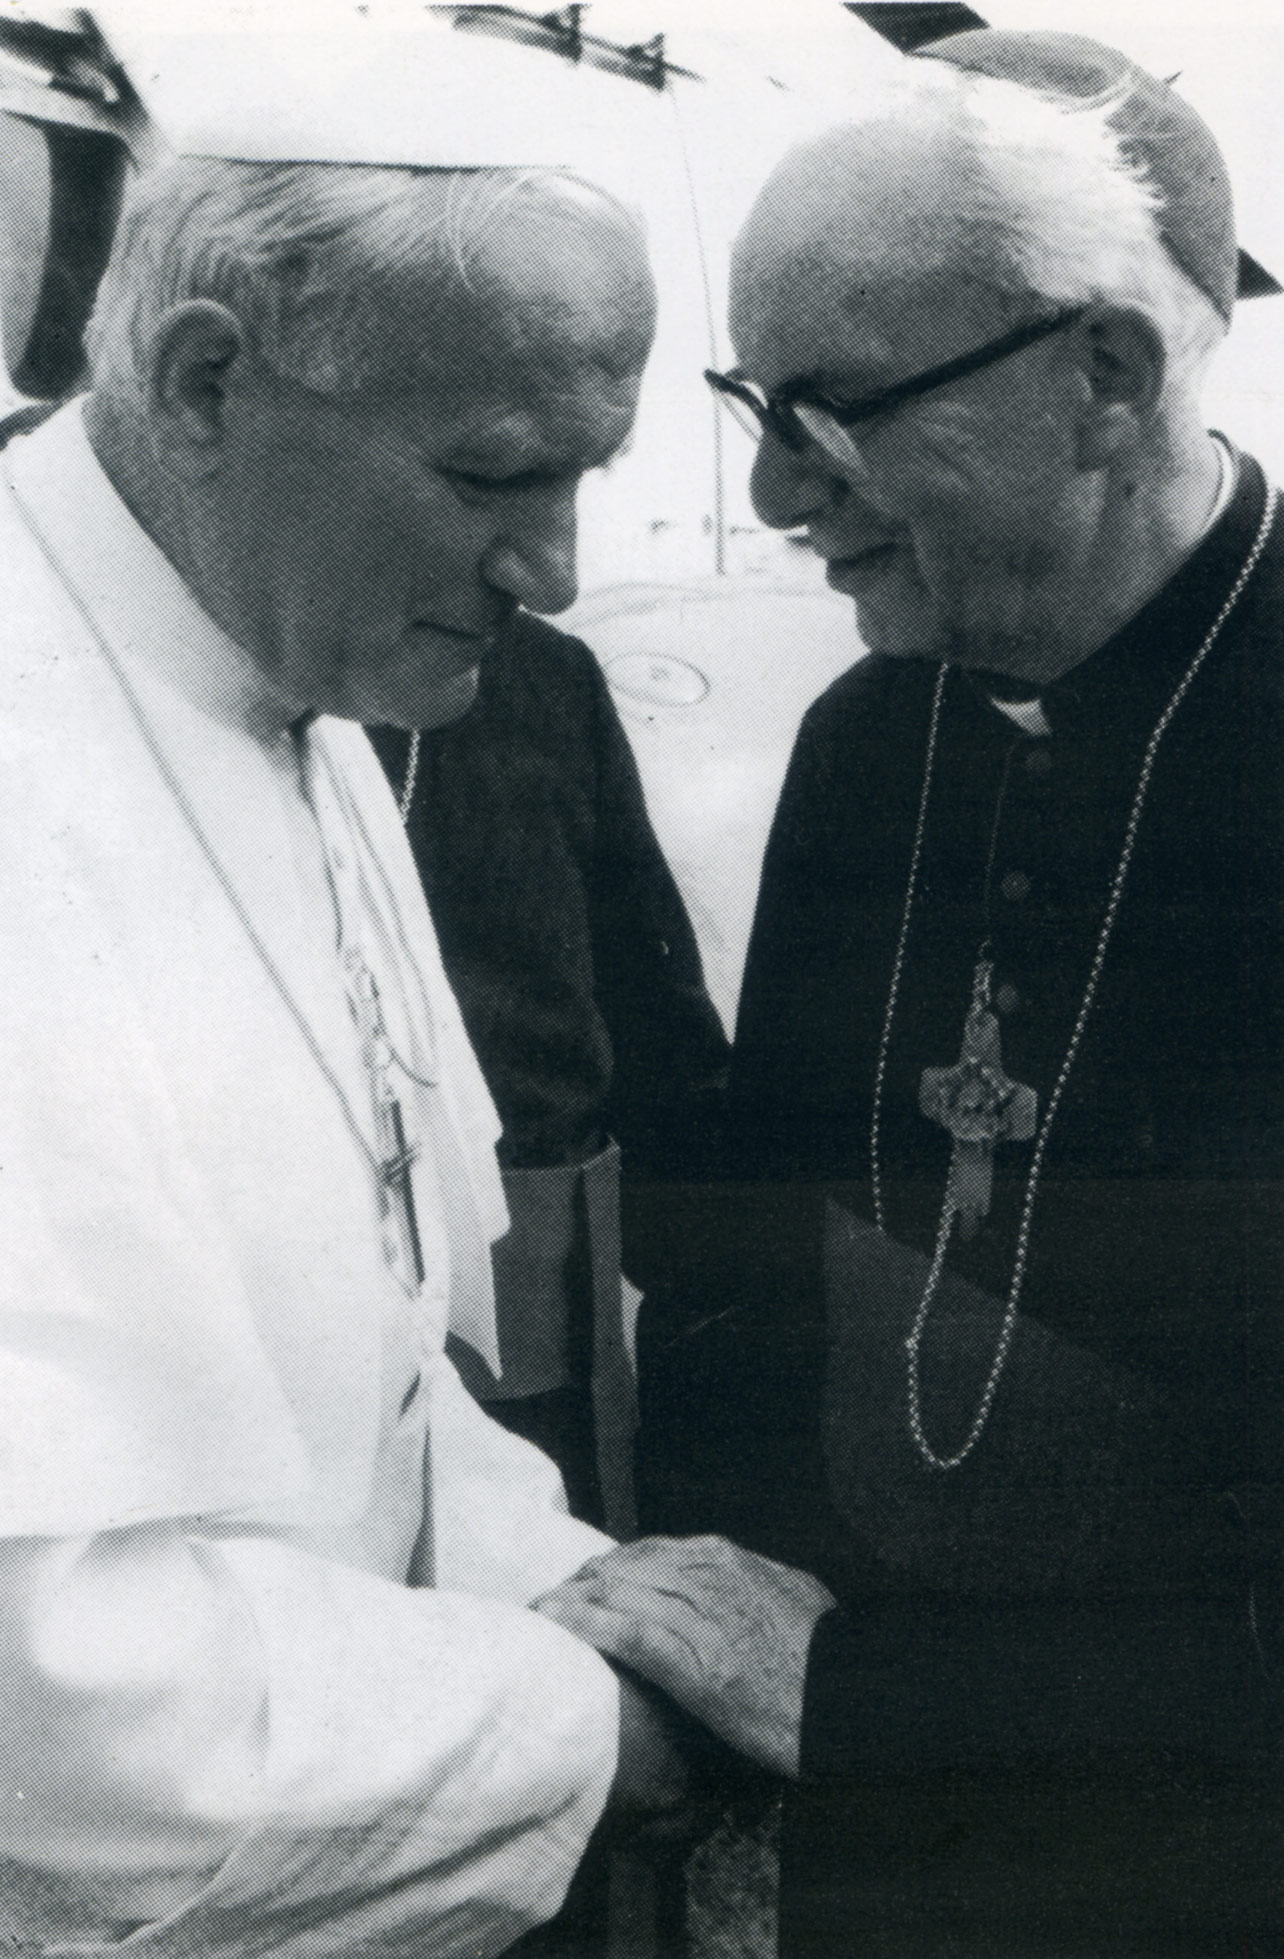 Bishop Wheeler greeting His Holiness Pope John Paul II on his arrival at the Knavesmire, York May 31 1982